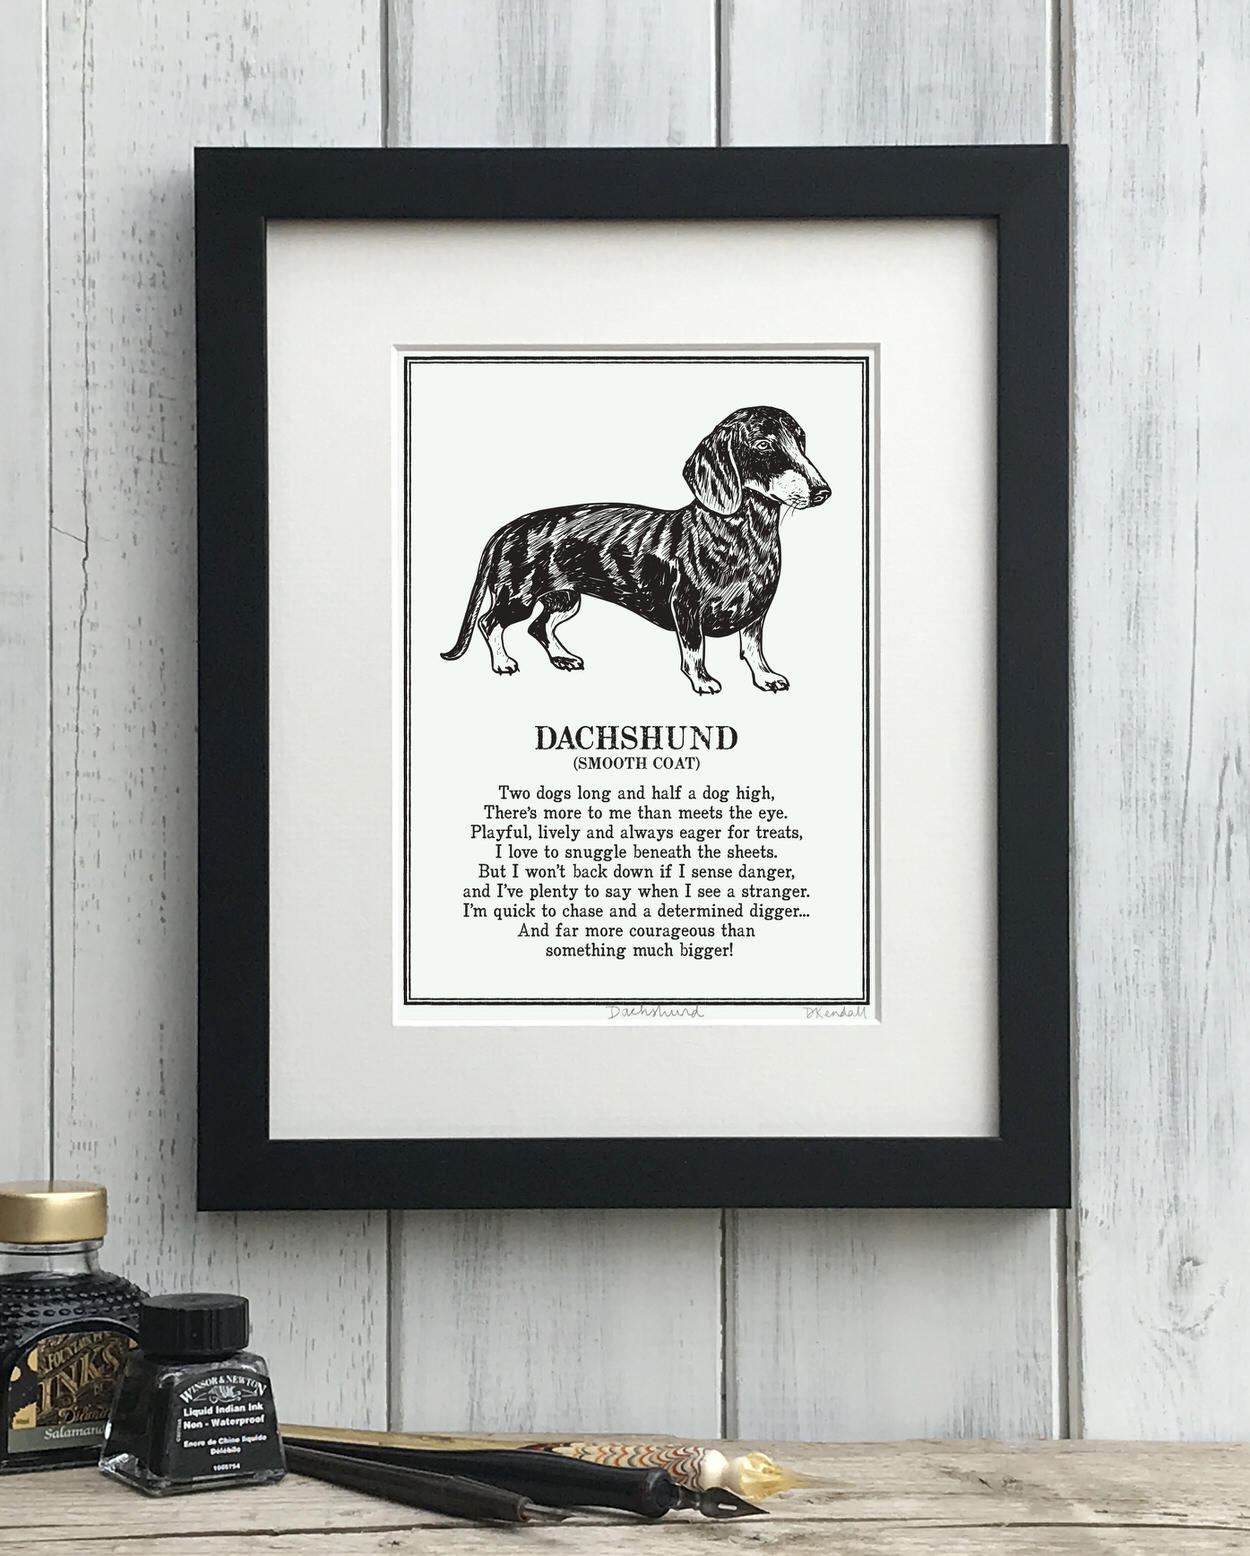 Dachshund print illustrated poem by The Enlightened Hound